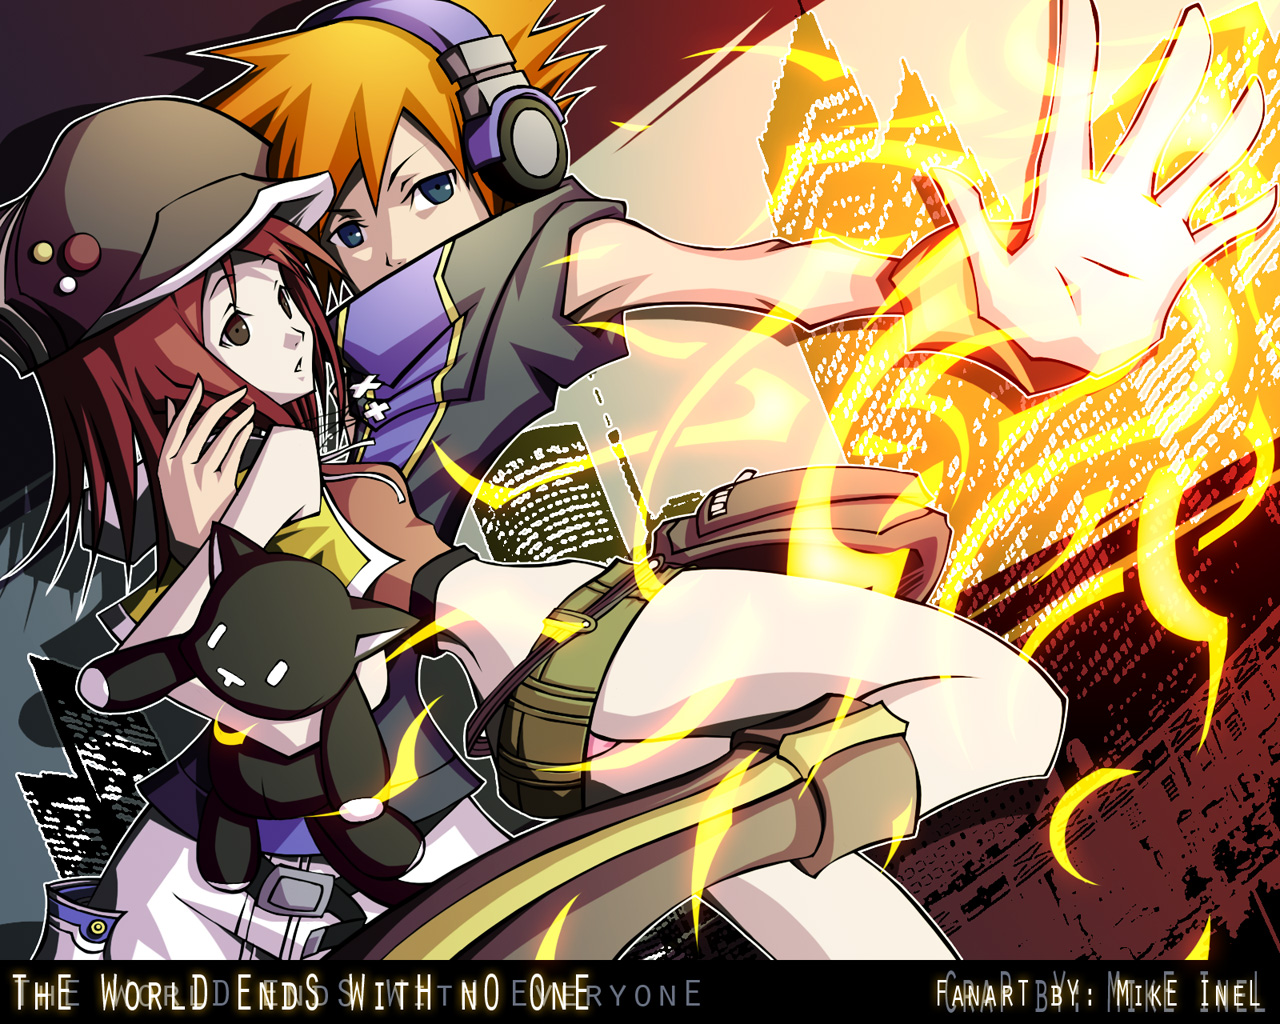 Can Anyone Share Some Good Twewy Wallpapers With Me The World